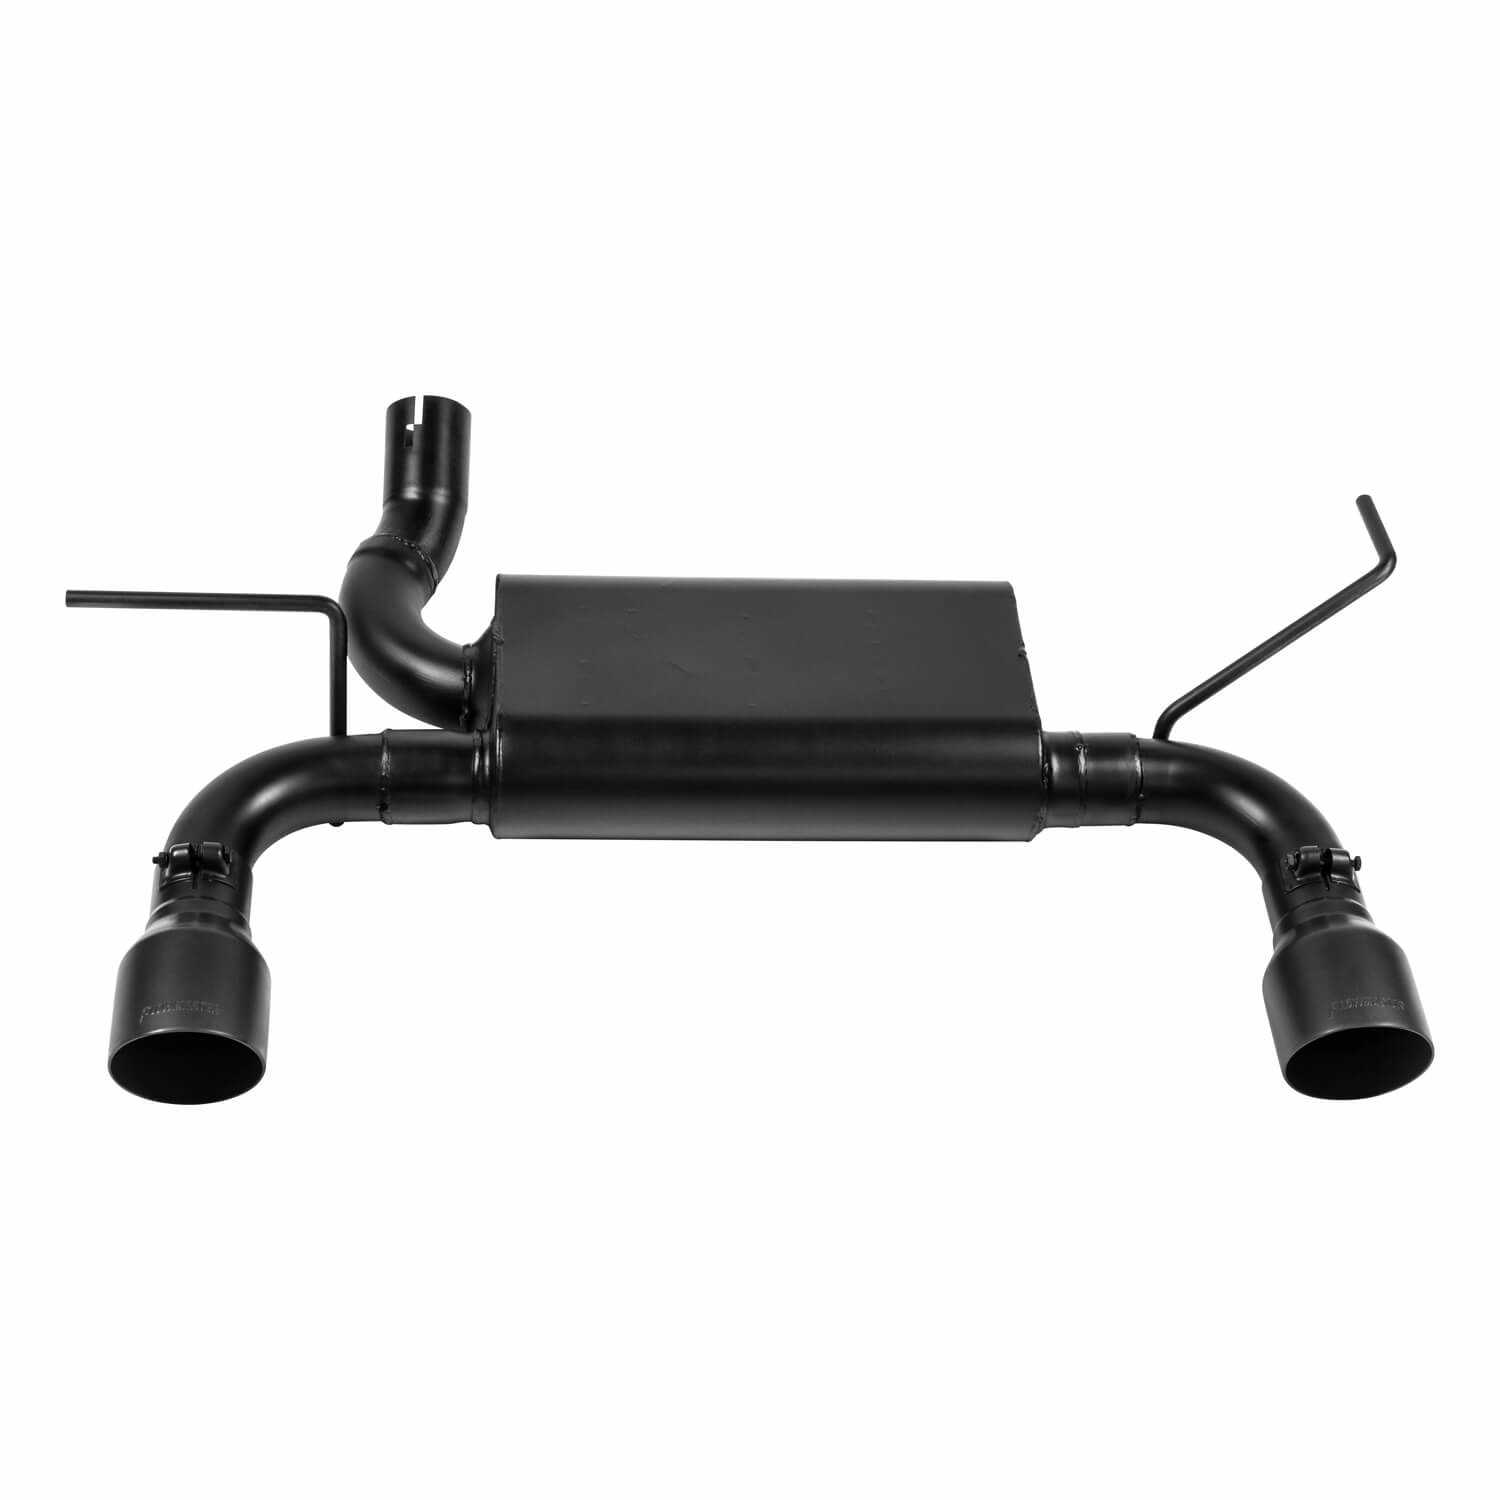 817790 Flowmaster Force II Axle Back Exhaust System